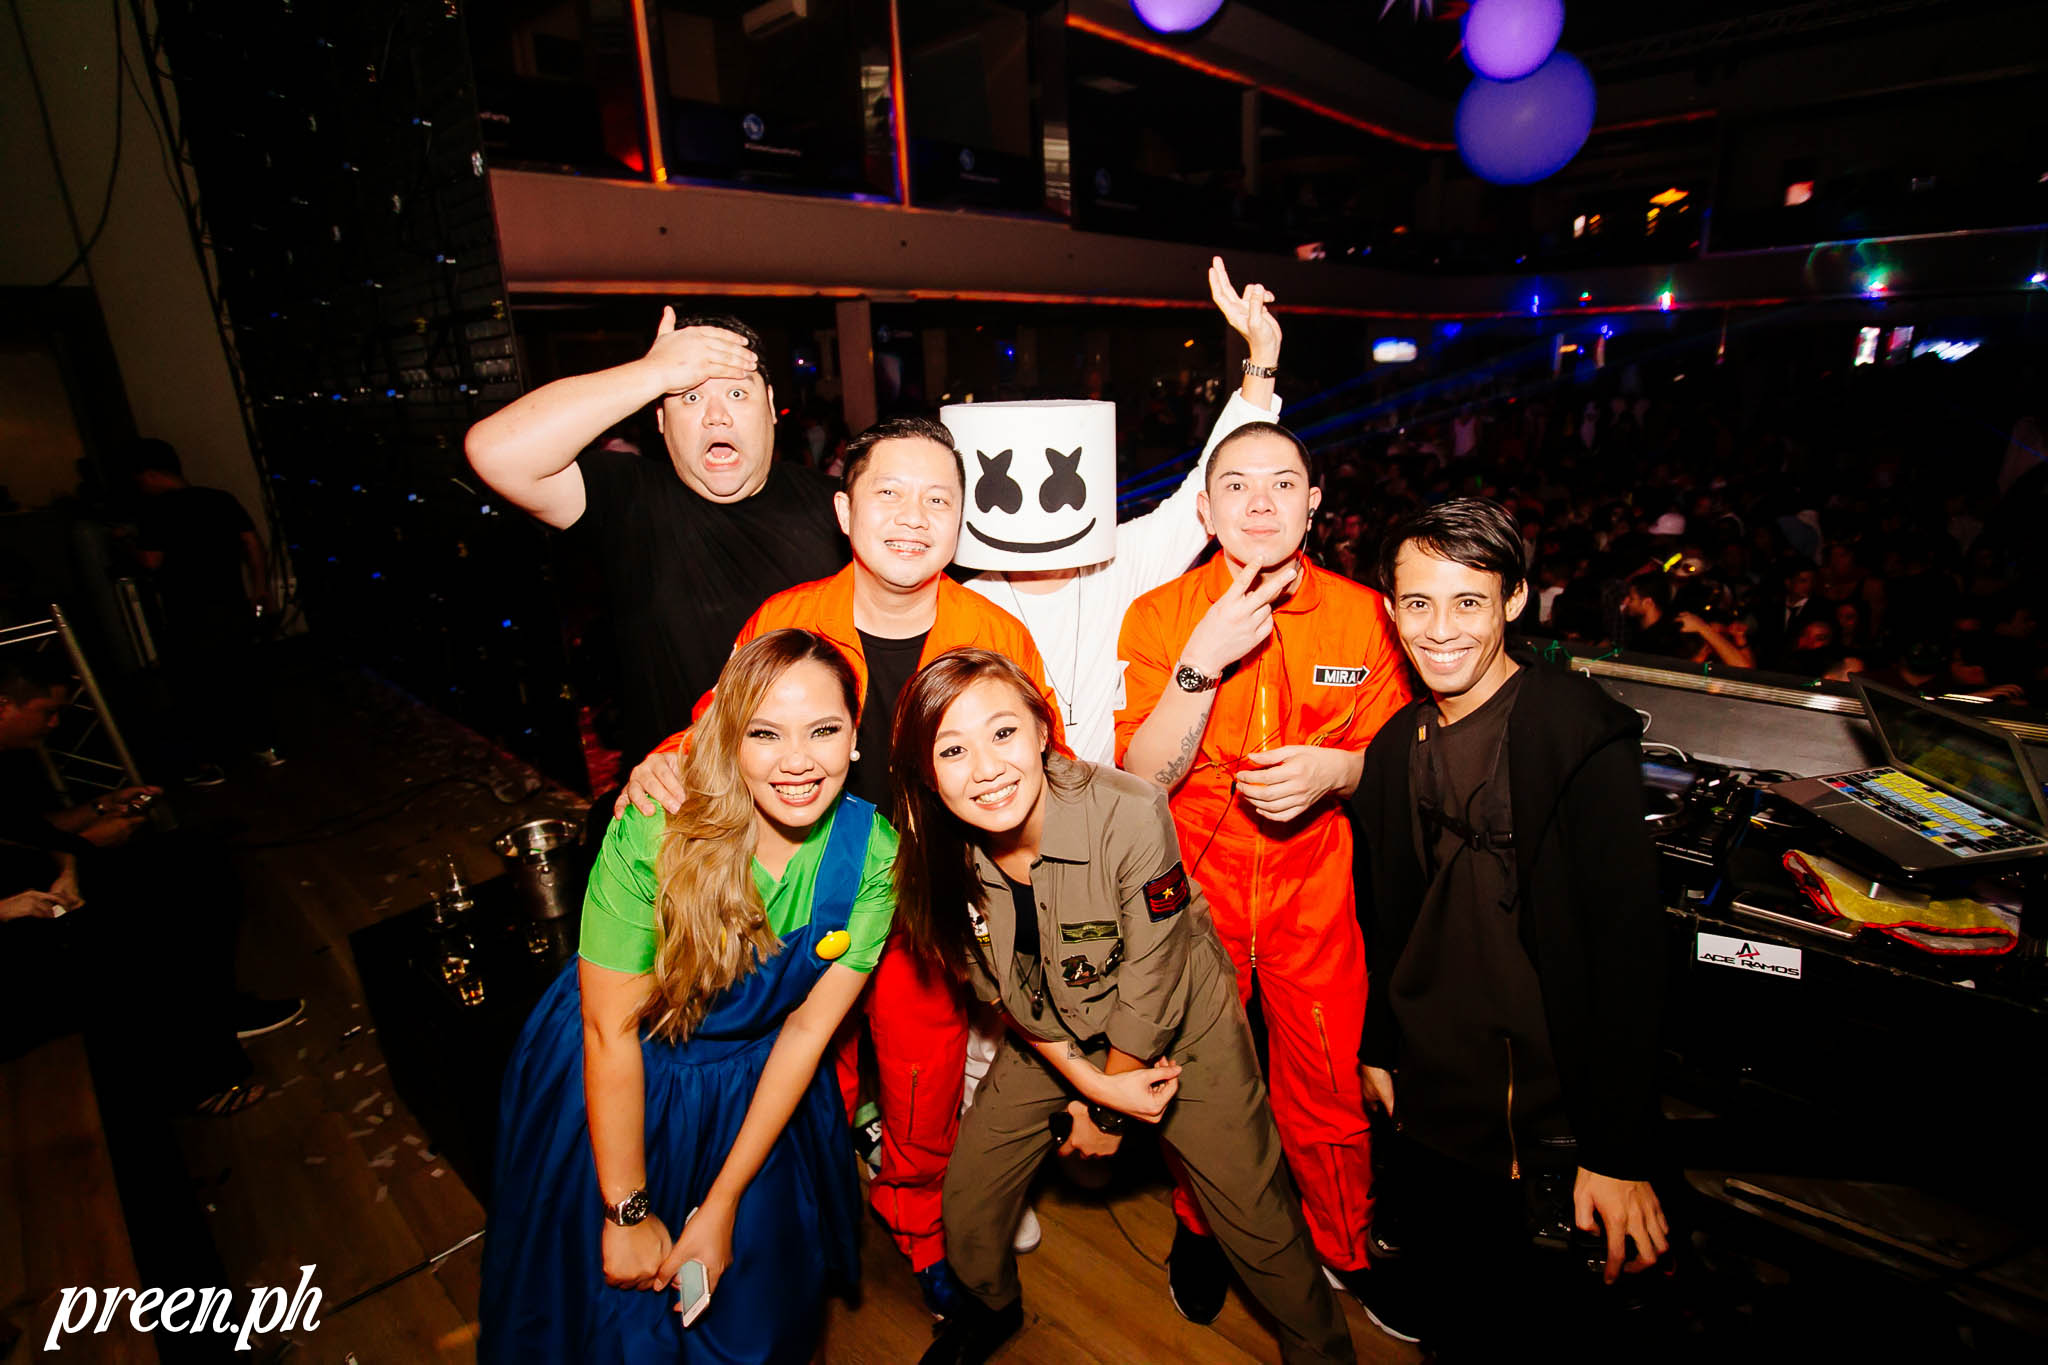 Spot the Who's Who at Viber Universe: The Halloween Ball - Preen